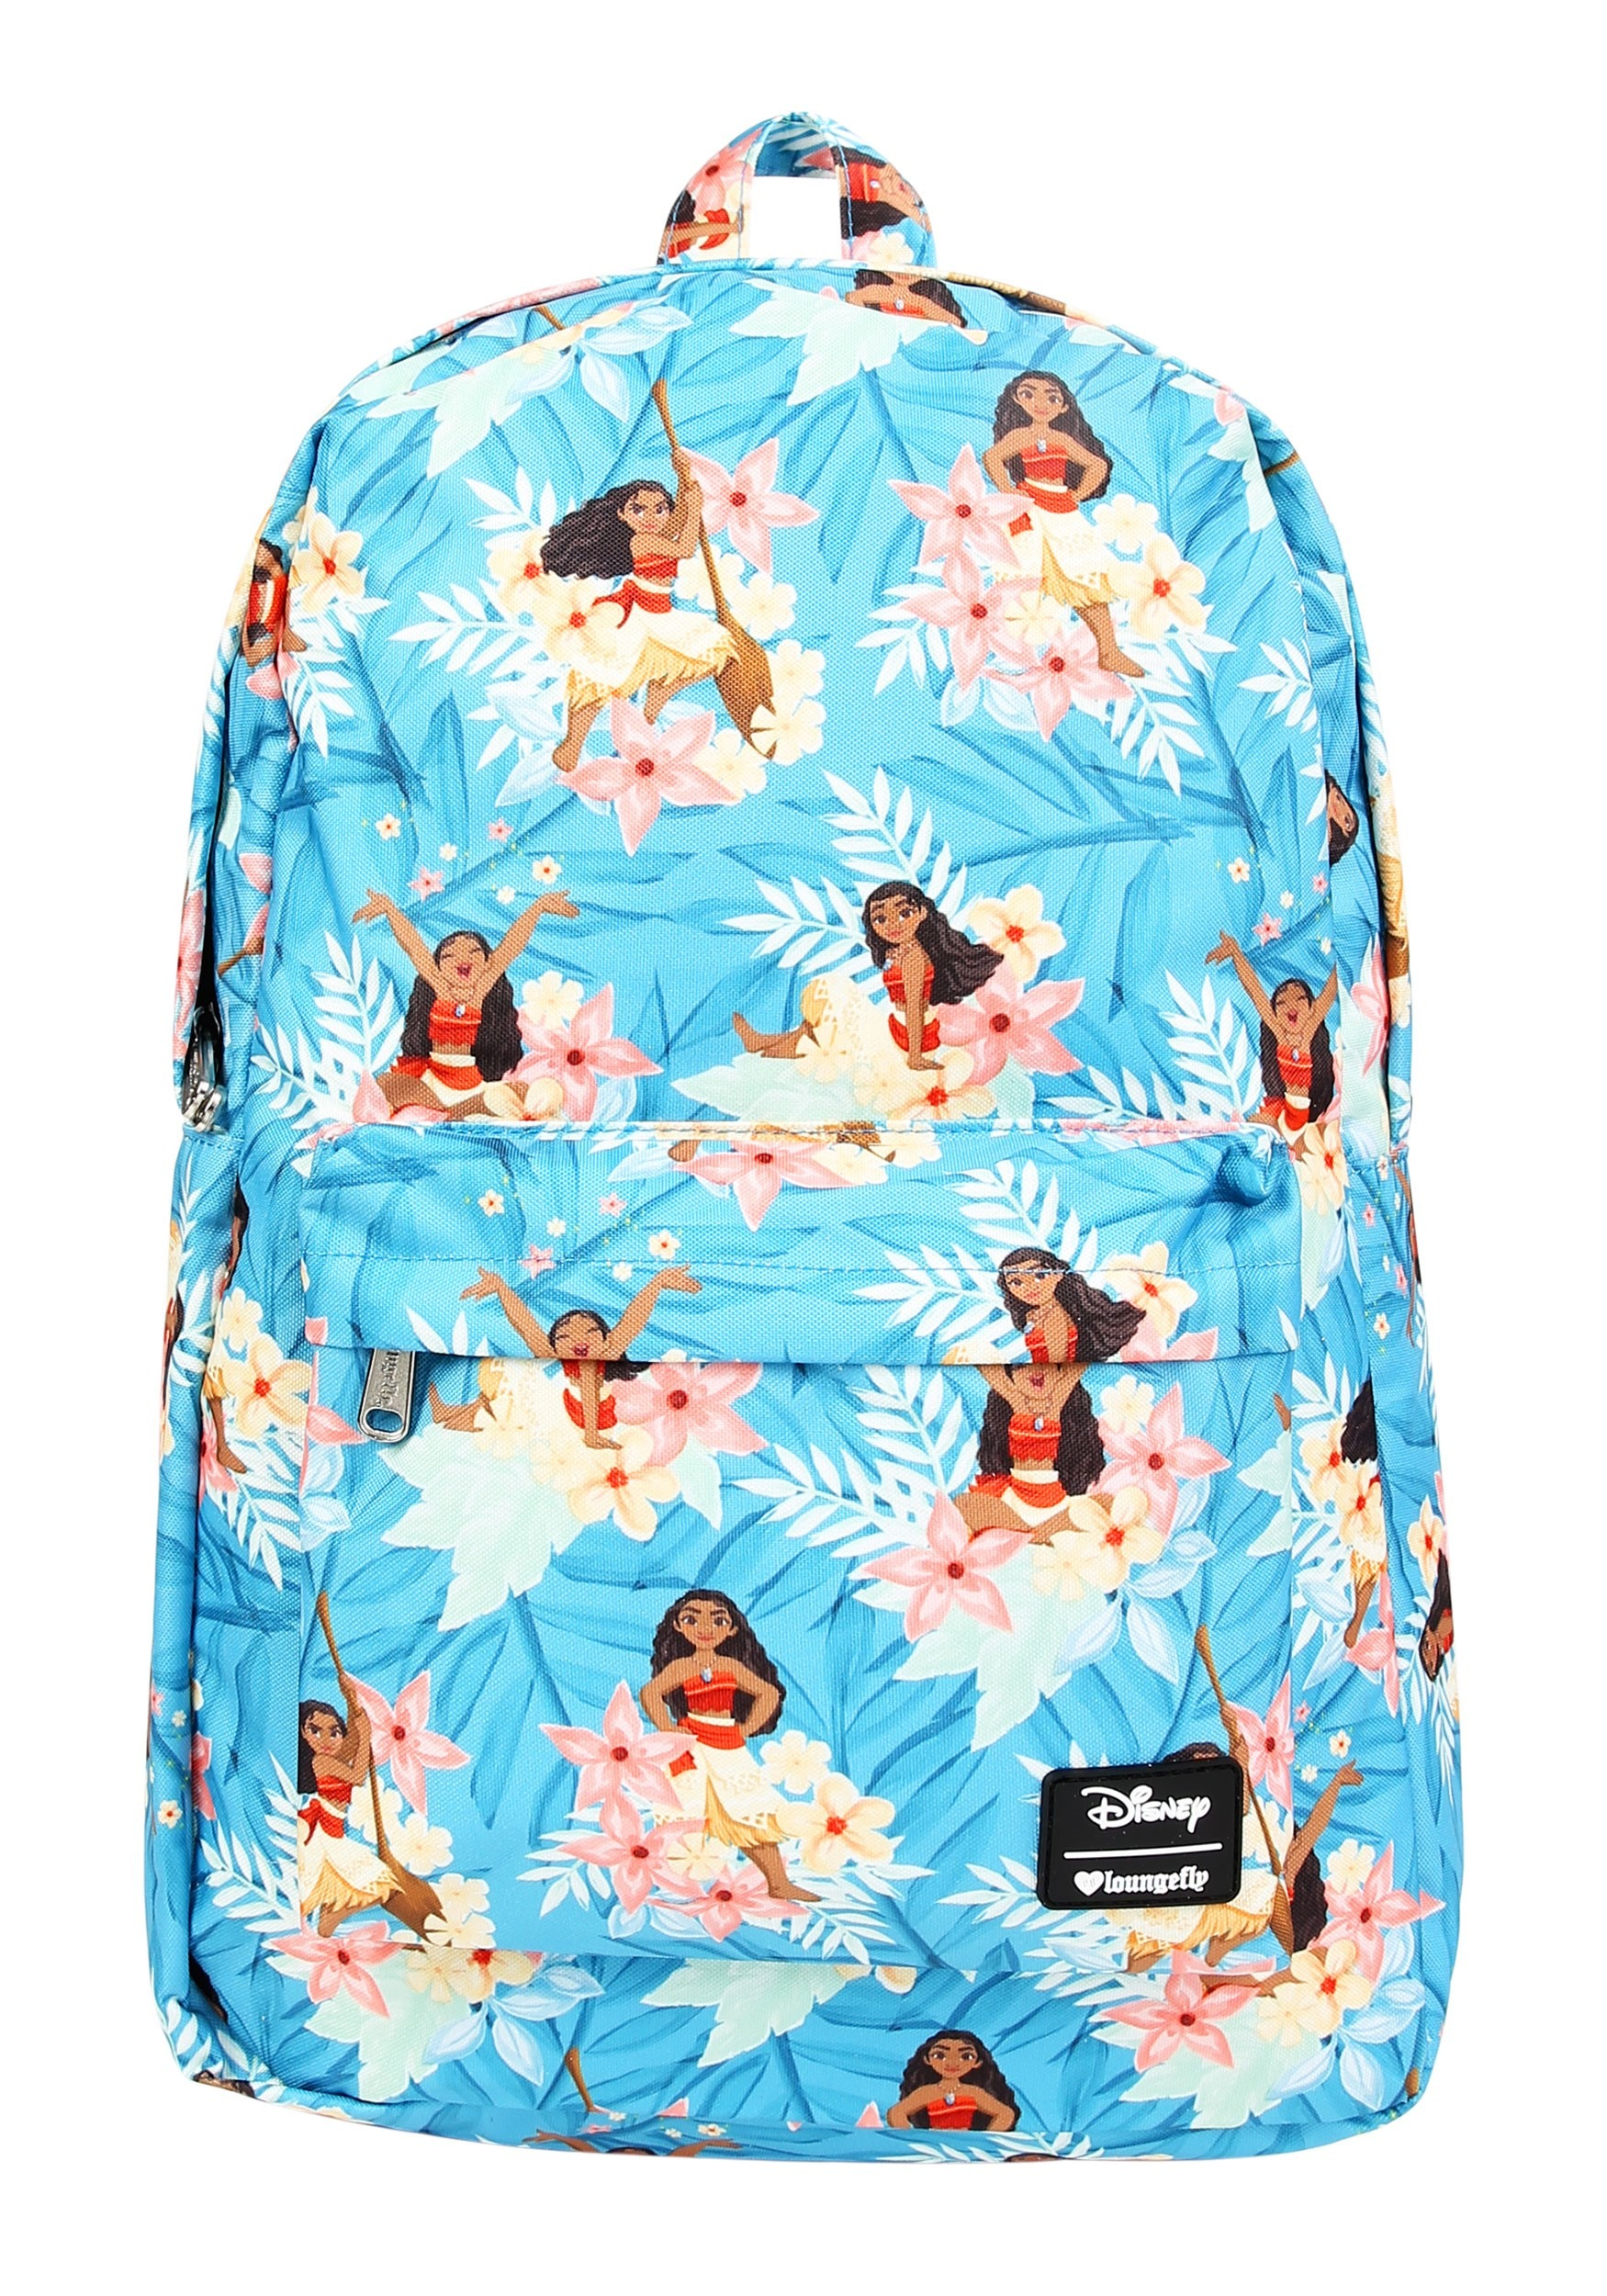 Loungefly Disney S Moana Blue Print Floral Backpack